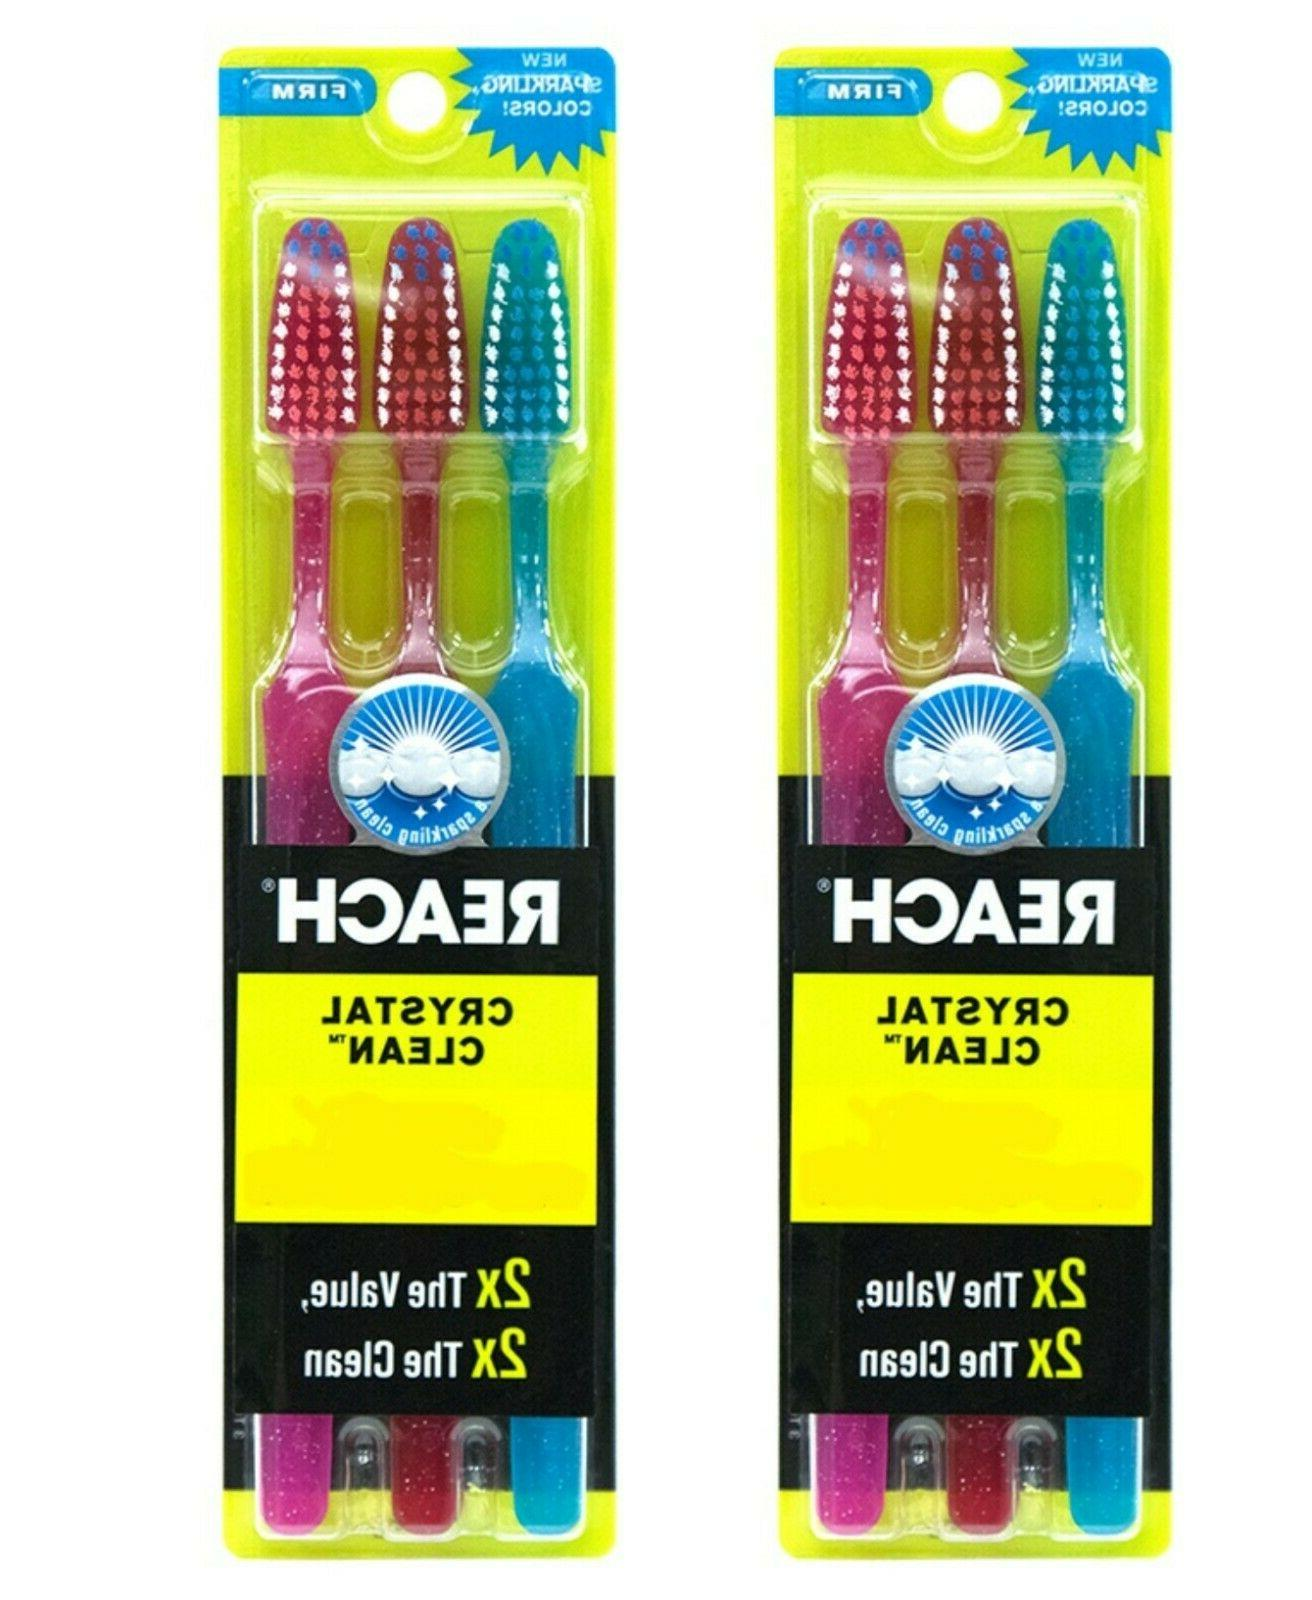 6 toothbrush extra clean firm bristles hard